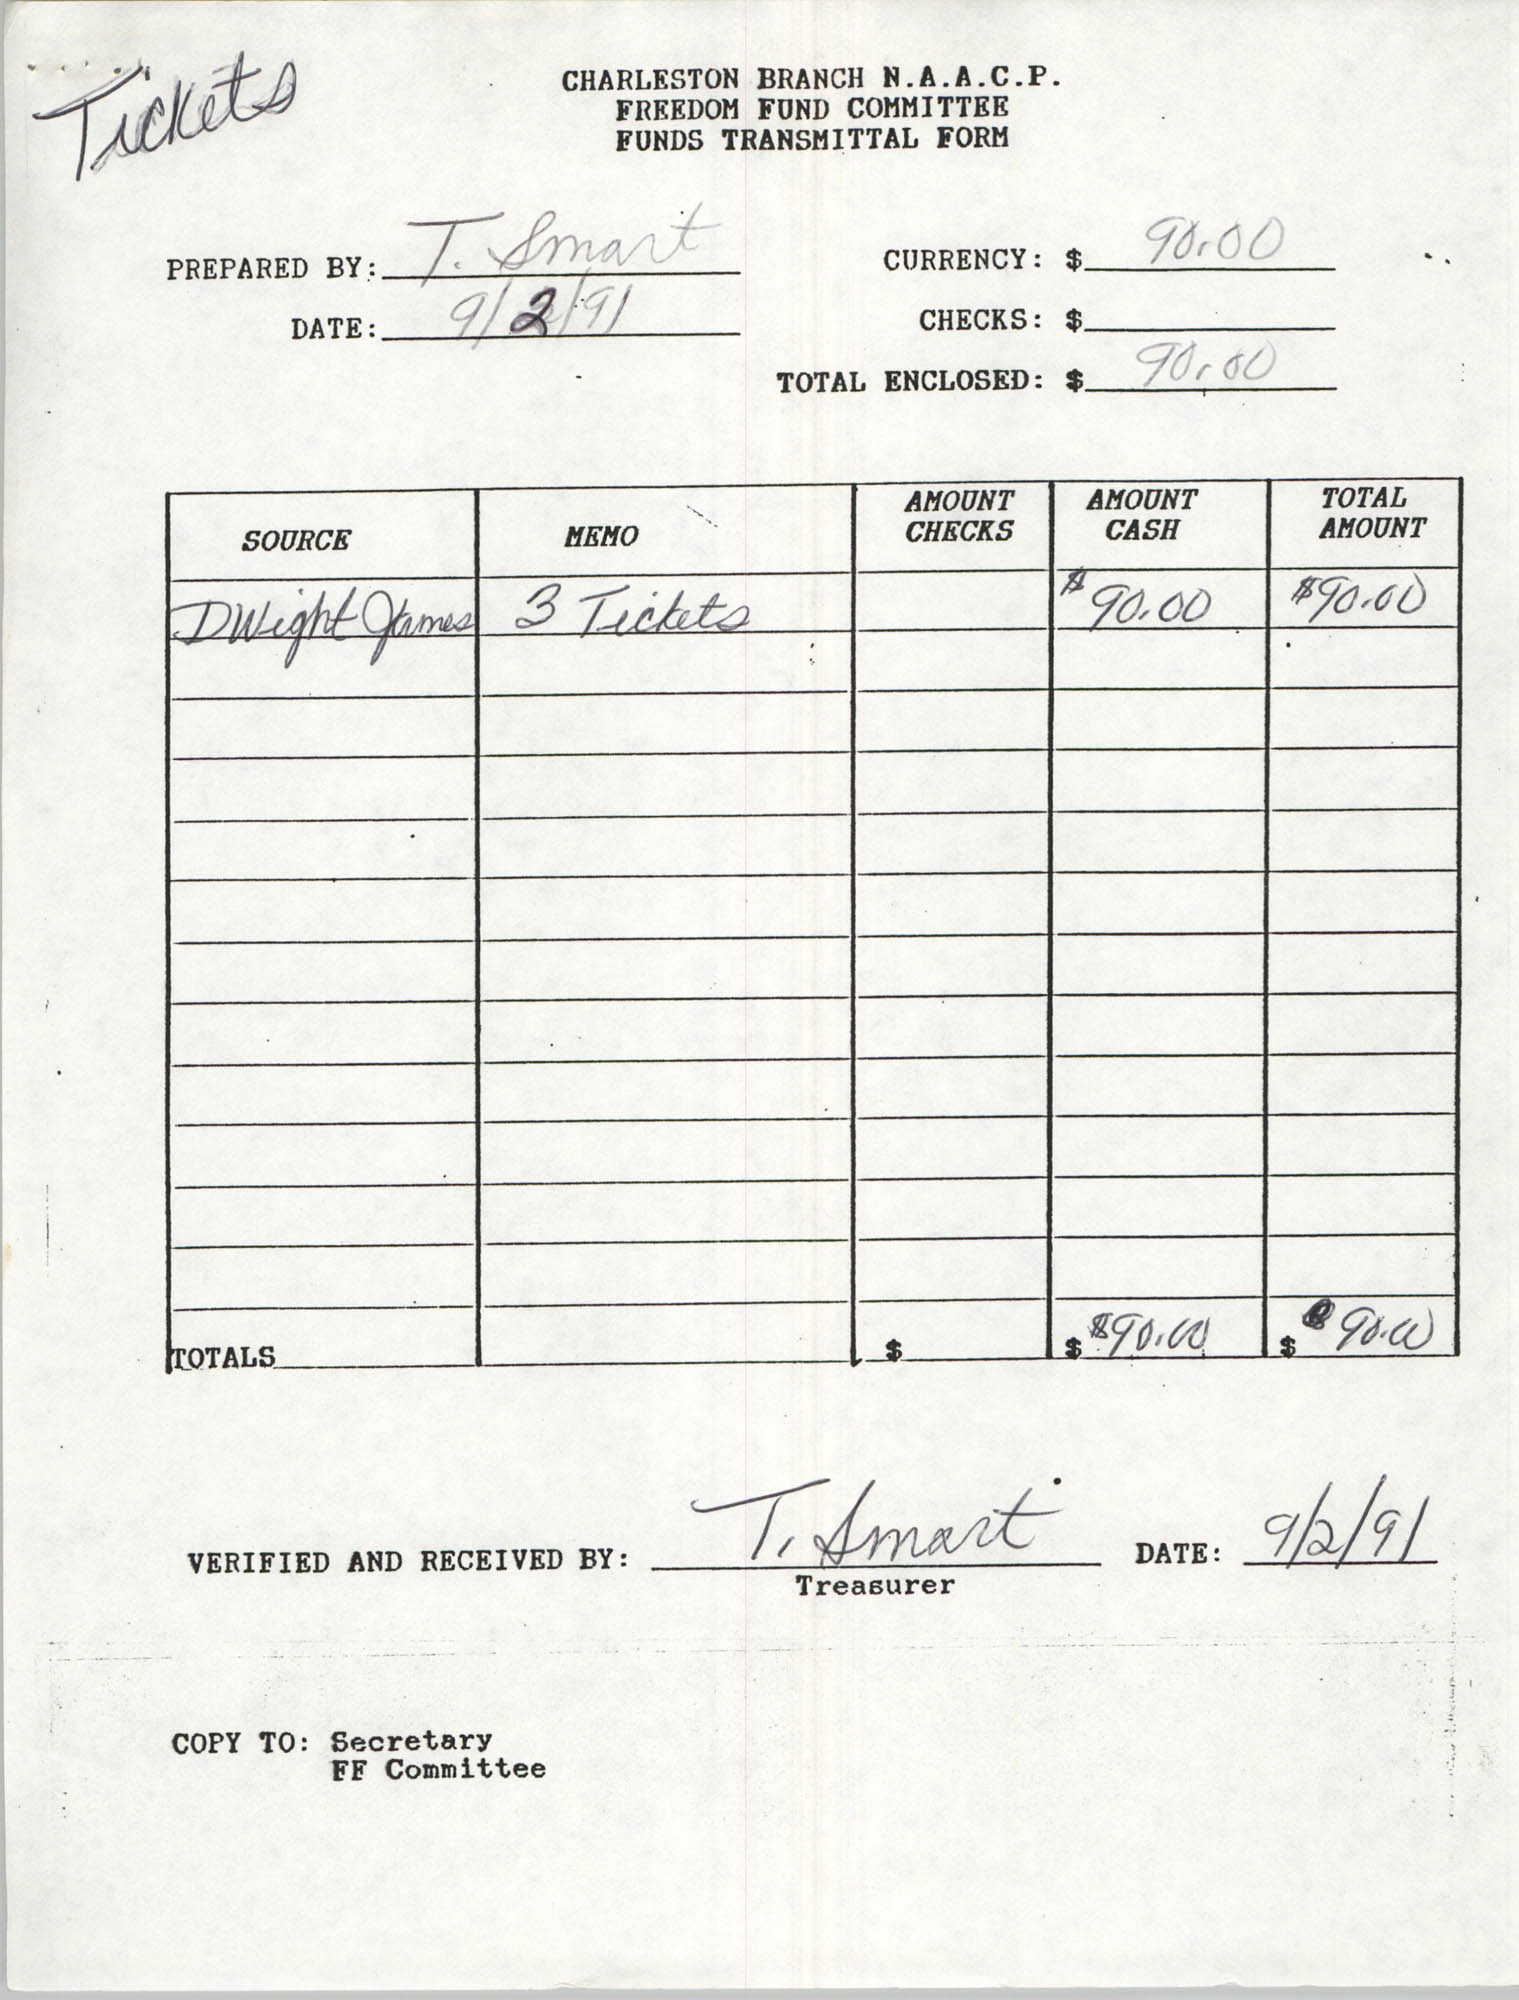 Charleston Branch of the NAACP Funds Transmittal Forms, September 1991, Page 5